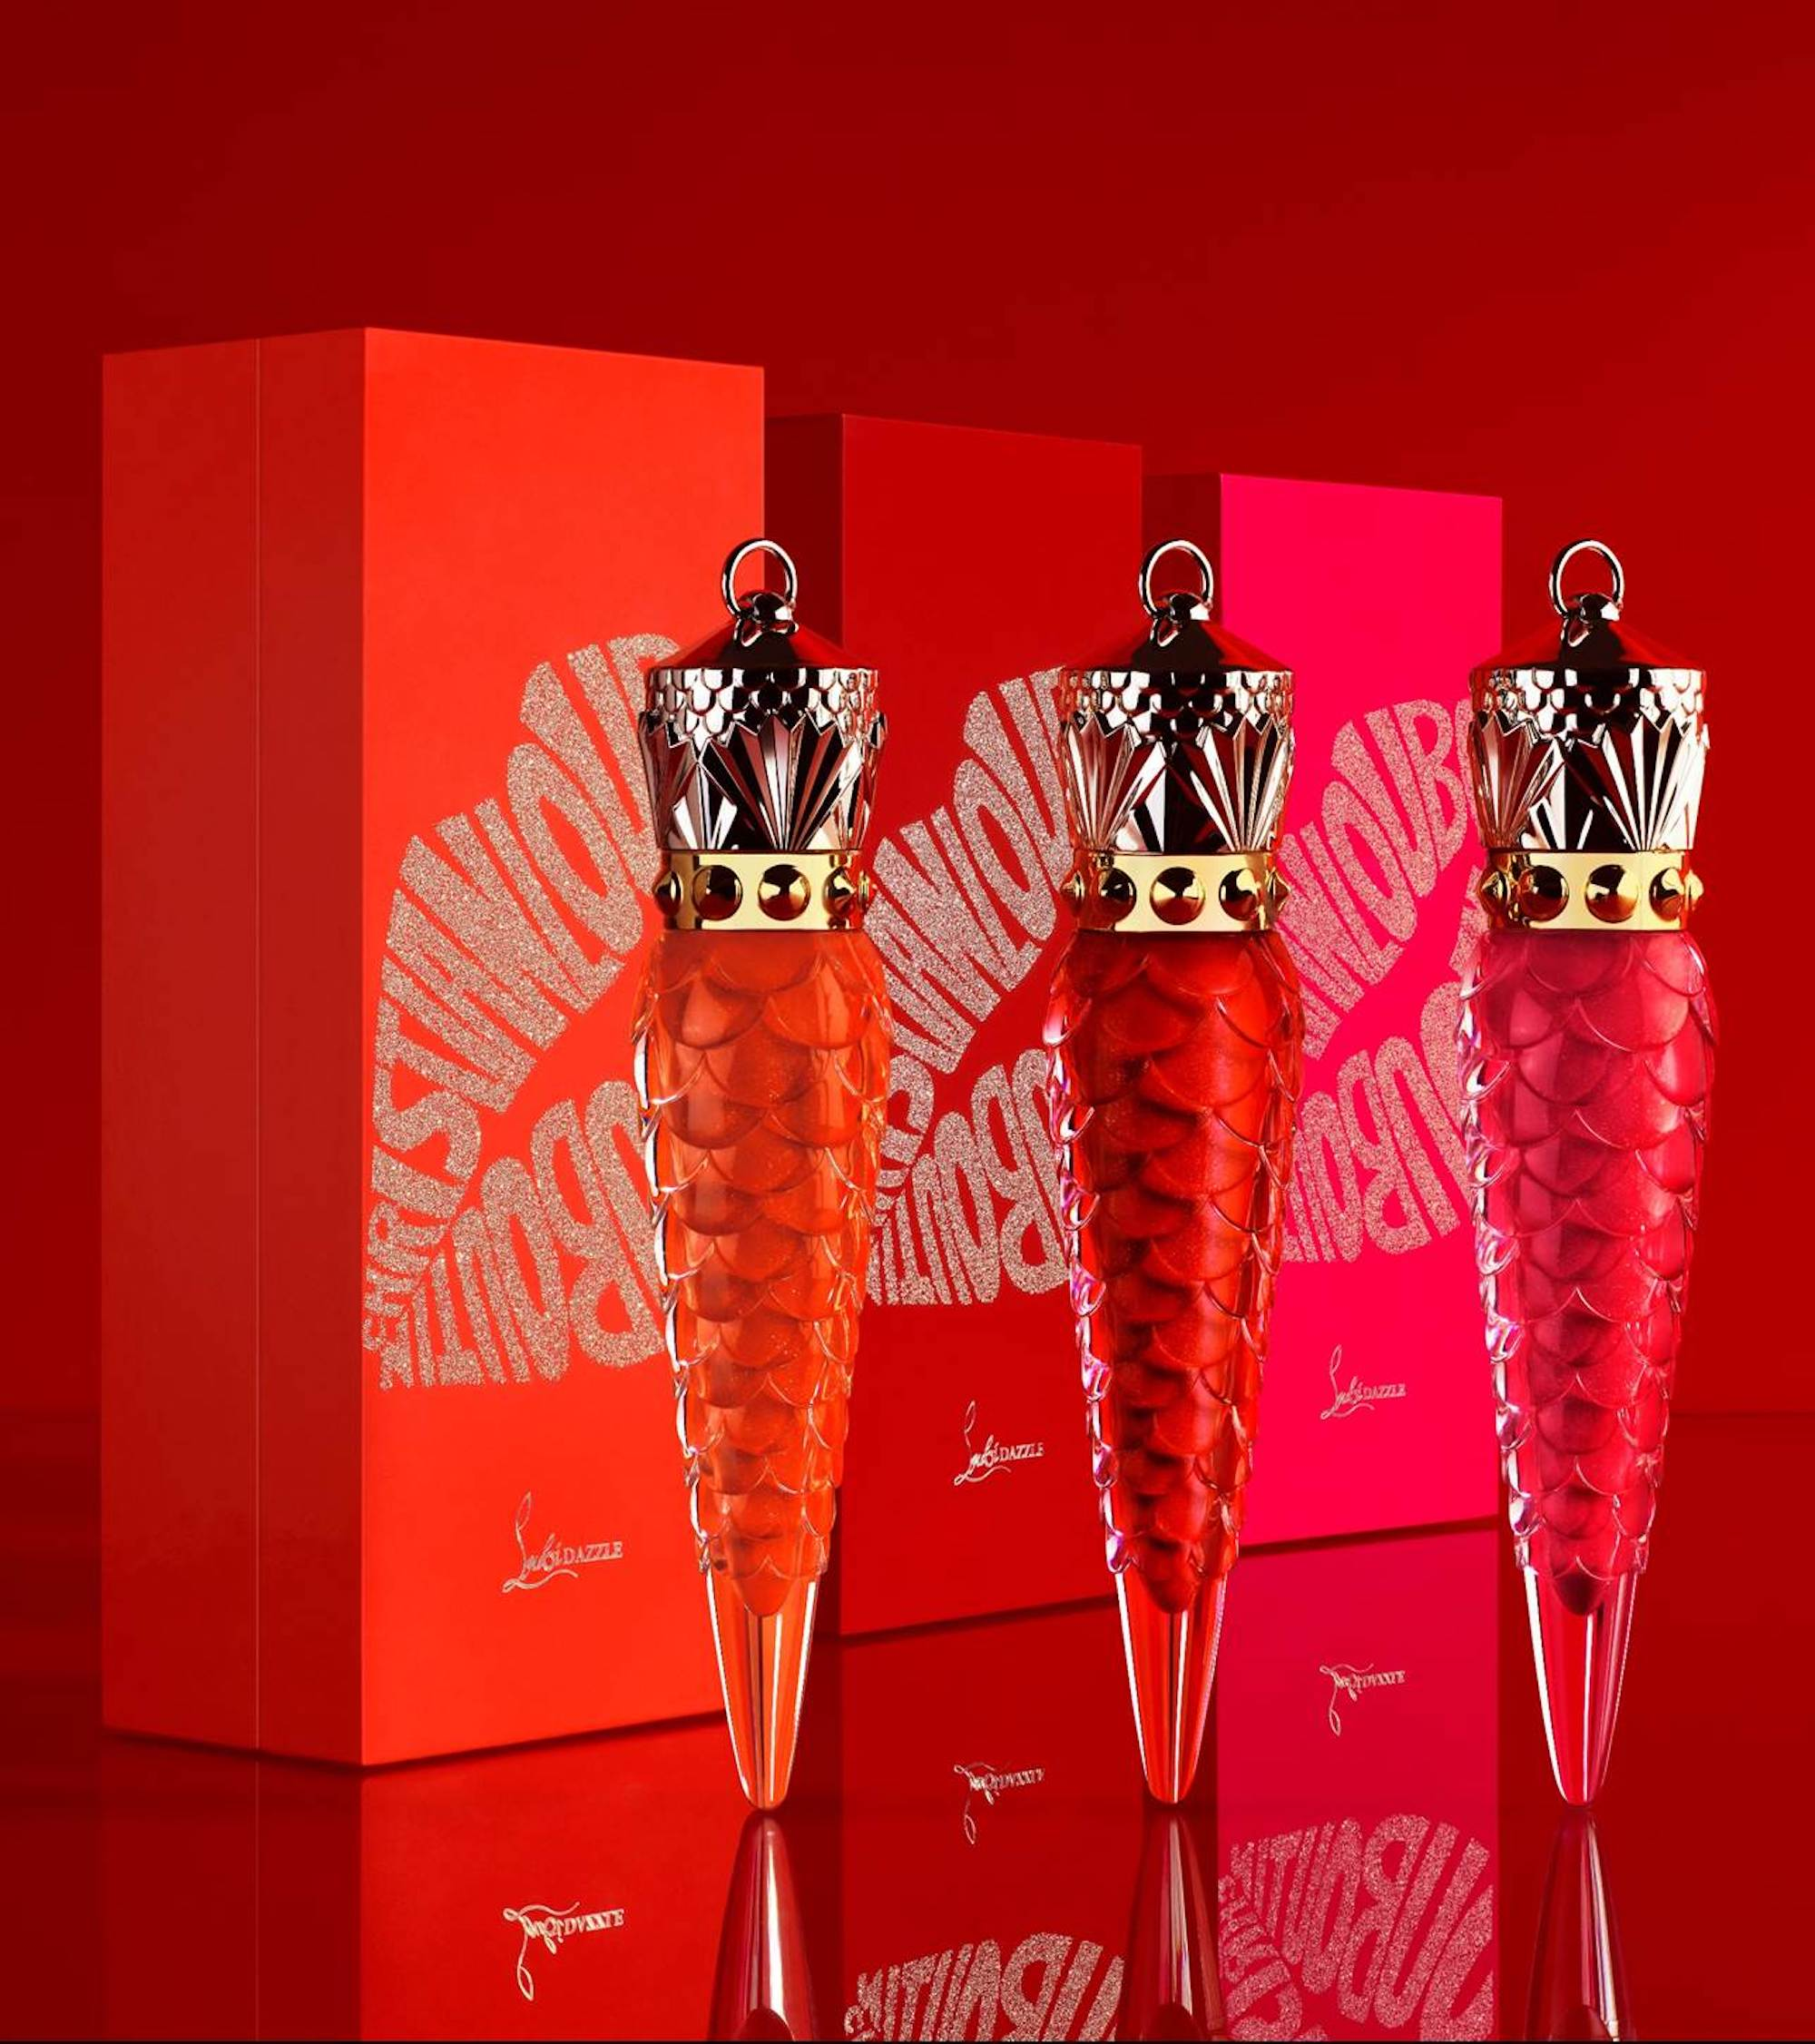 Christian louboutin launch their new collection LoubiDazzle